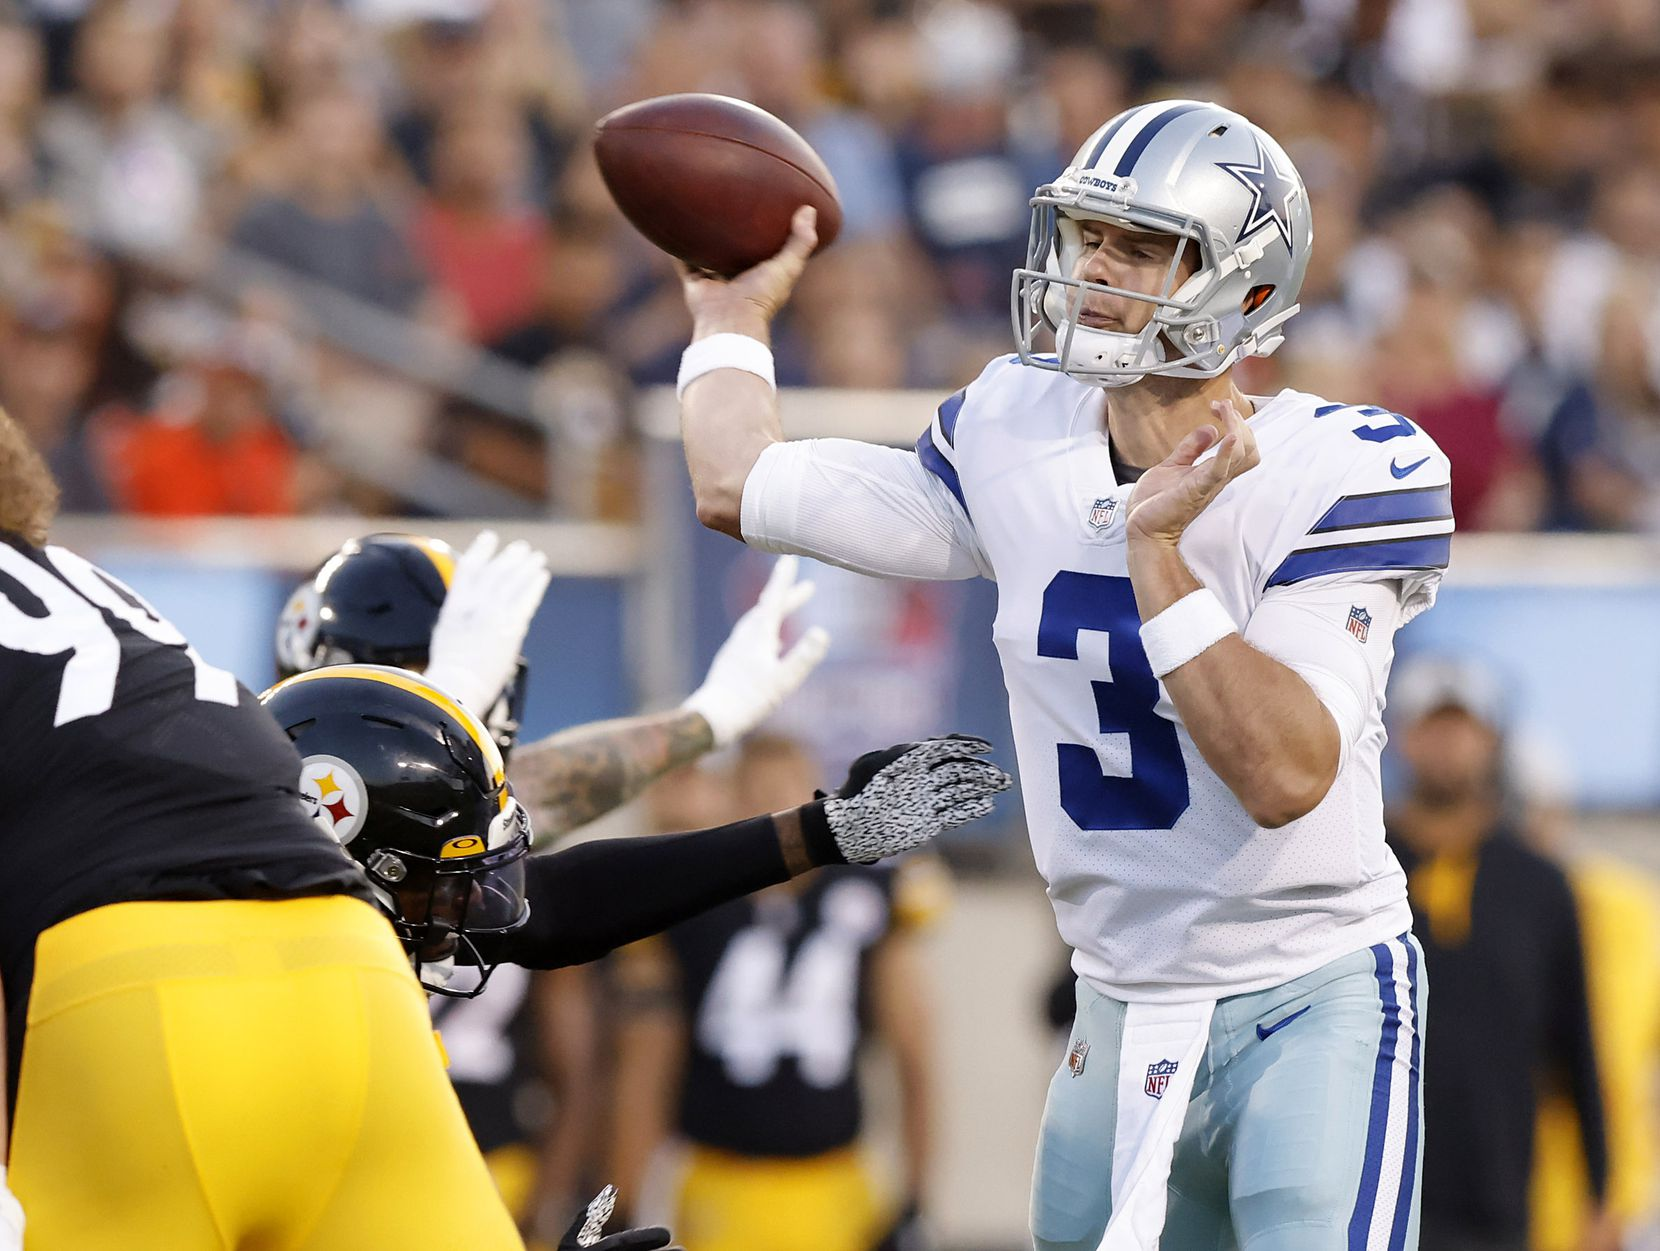 Dallas Cowboys quarterback Garrett Gilbert (3) releases a first quarter pass before being hit by a Pittsburgh Steelers defender during the first quarter of their preseason game at Tom Benson Hall of Fame Stadium in Canton, Ohio, Thursday, August 5, 2021. (Tom Fox/The Dallas Morning News)